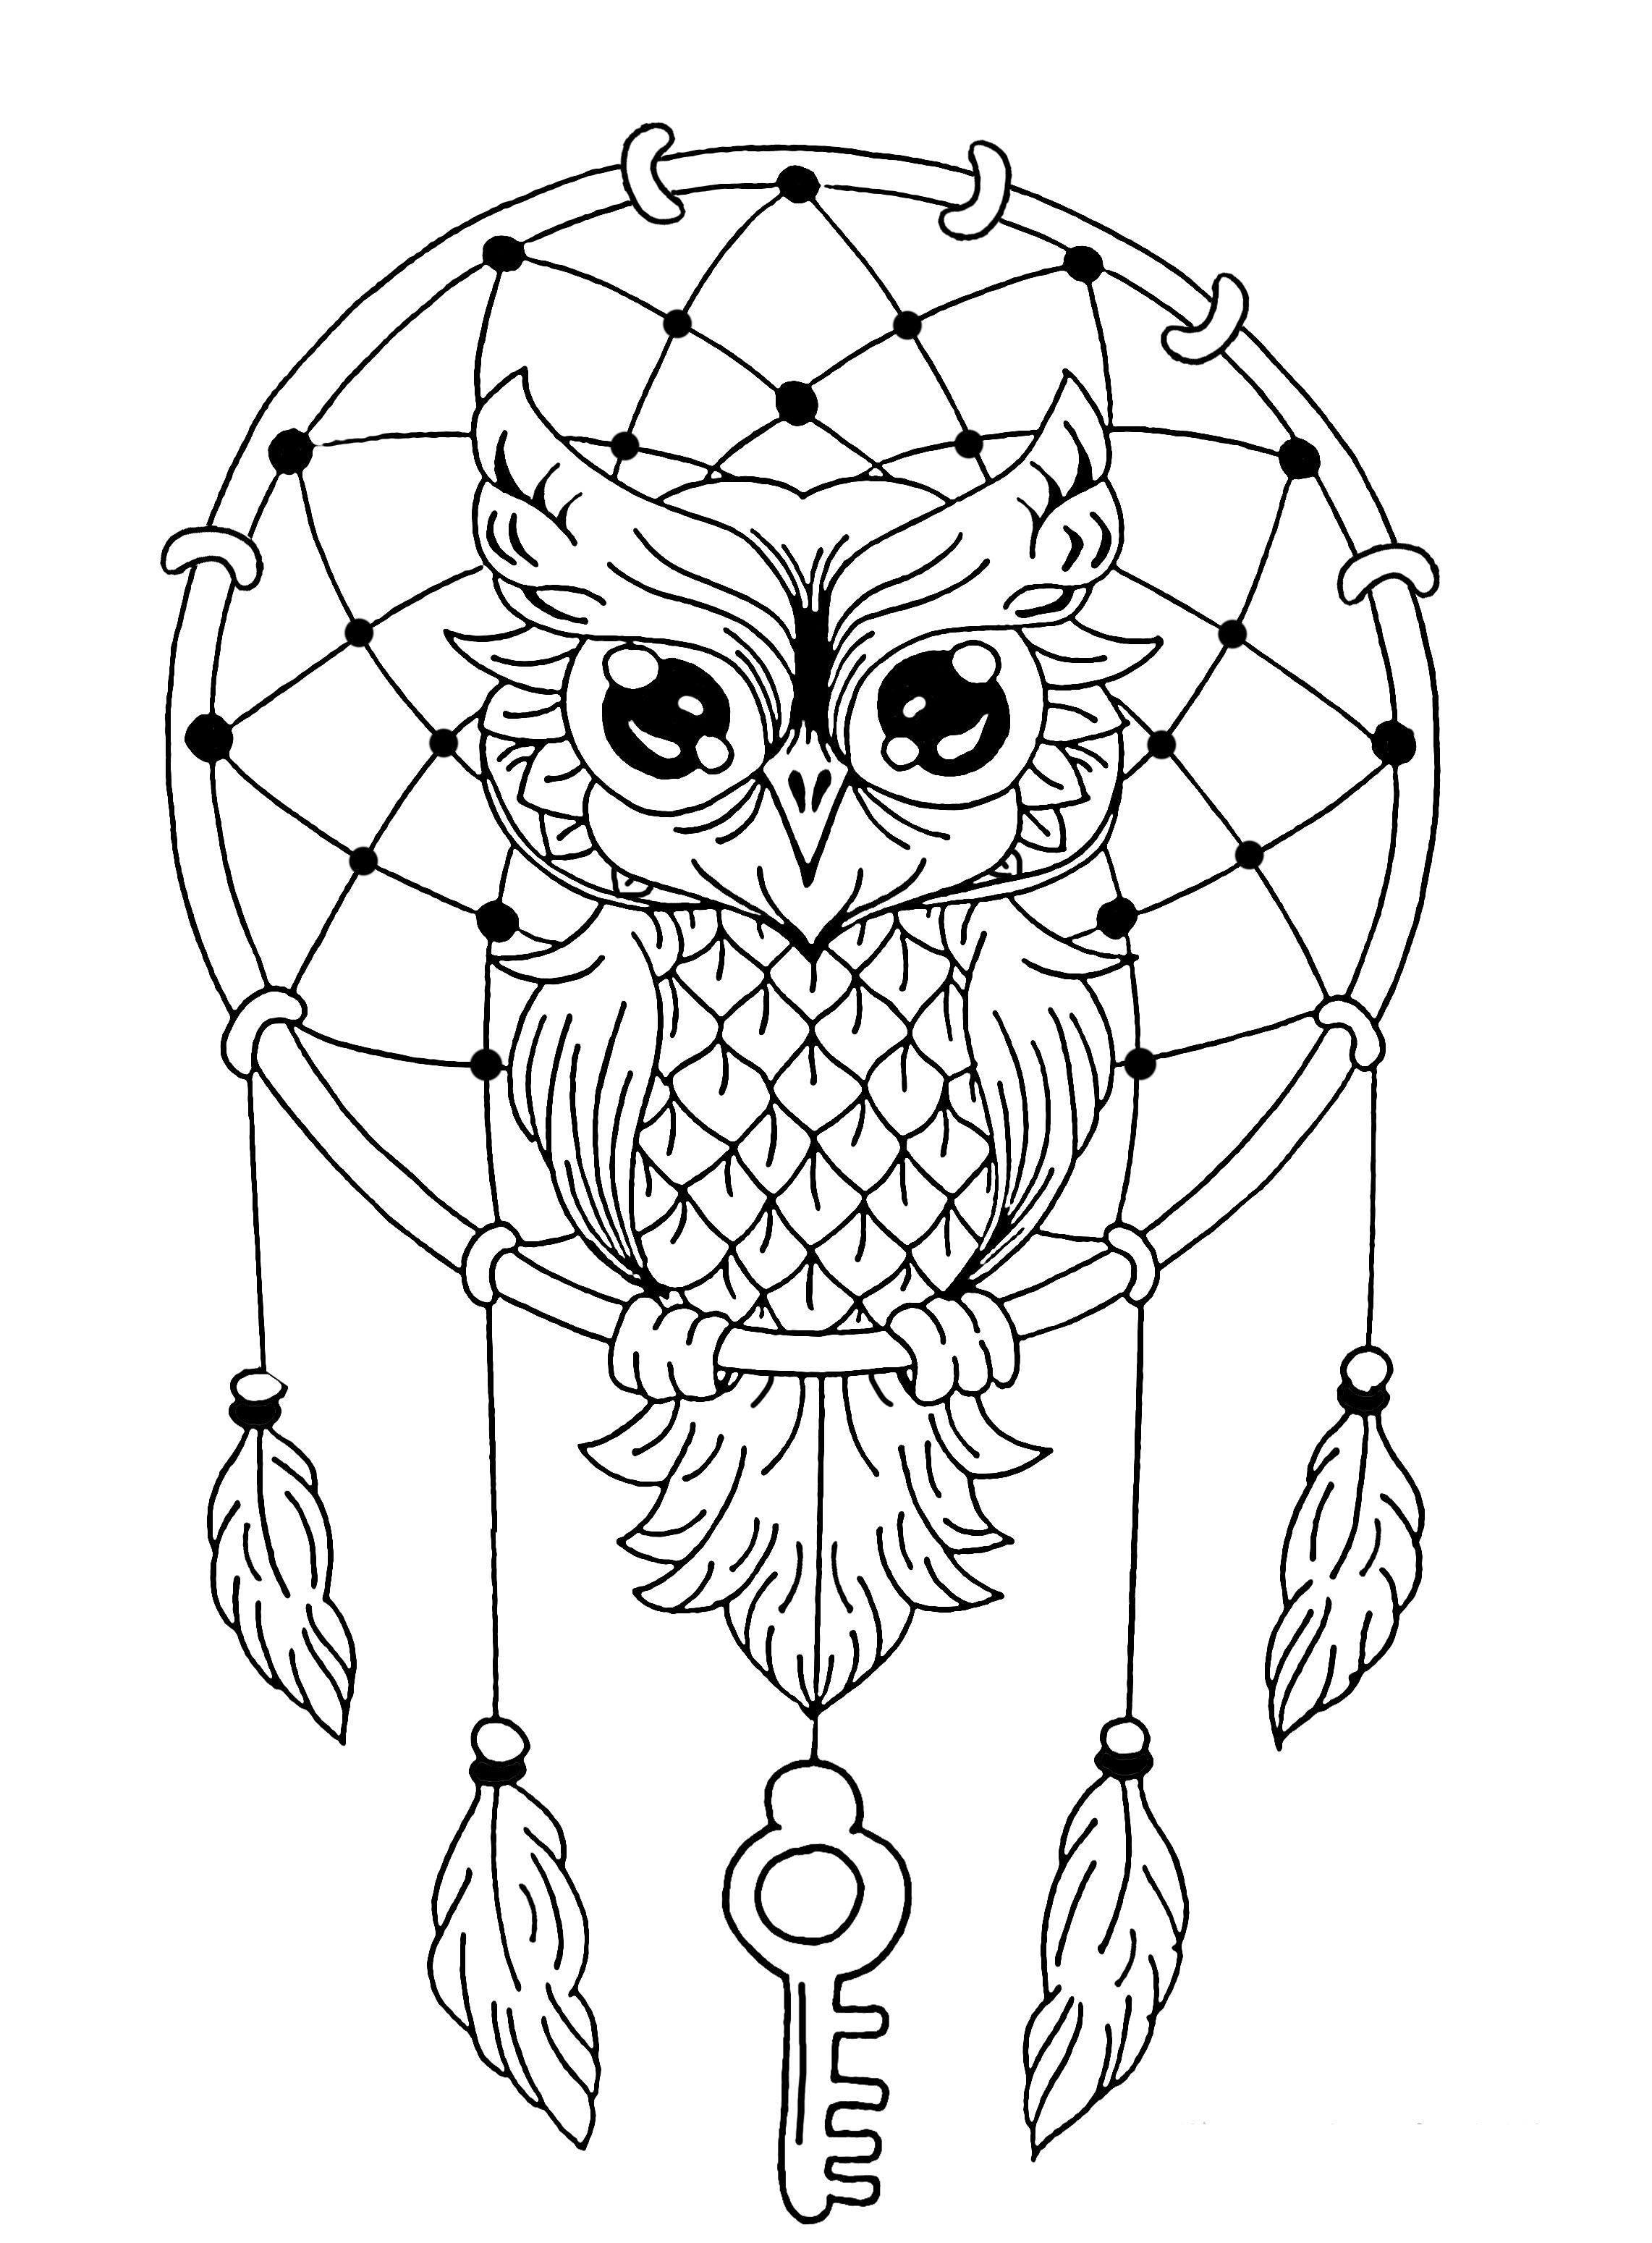 mandala easy dreamcatcher owl simple mandalas 100